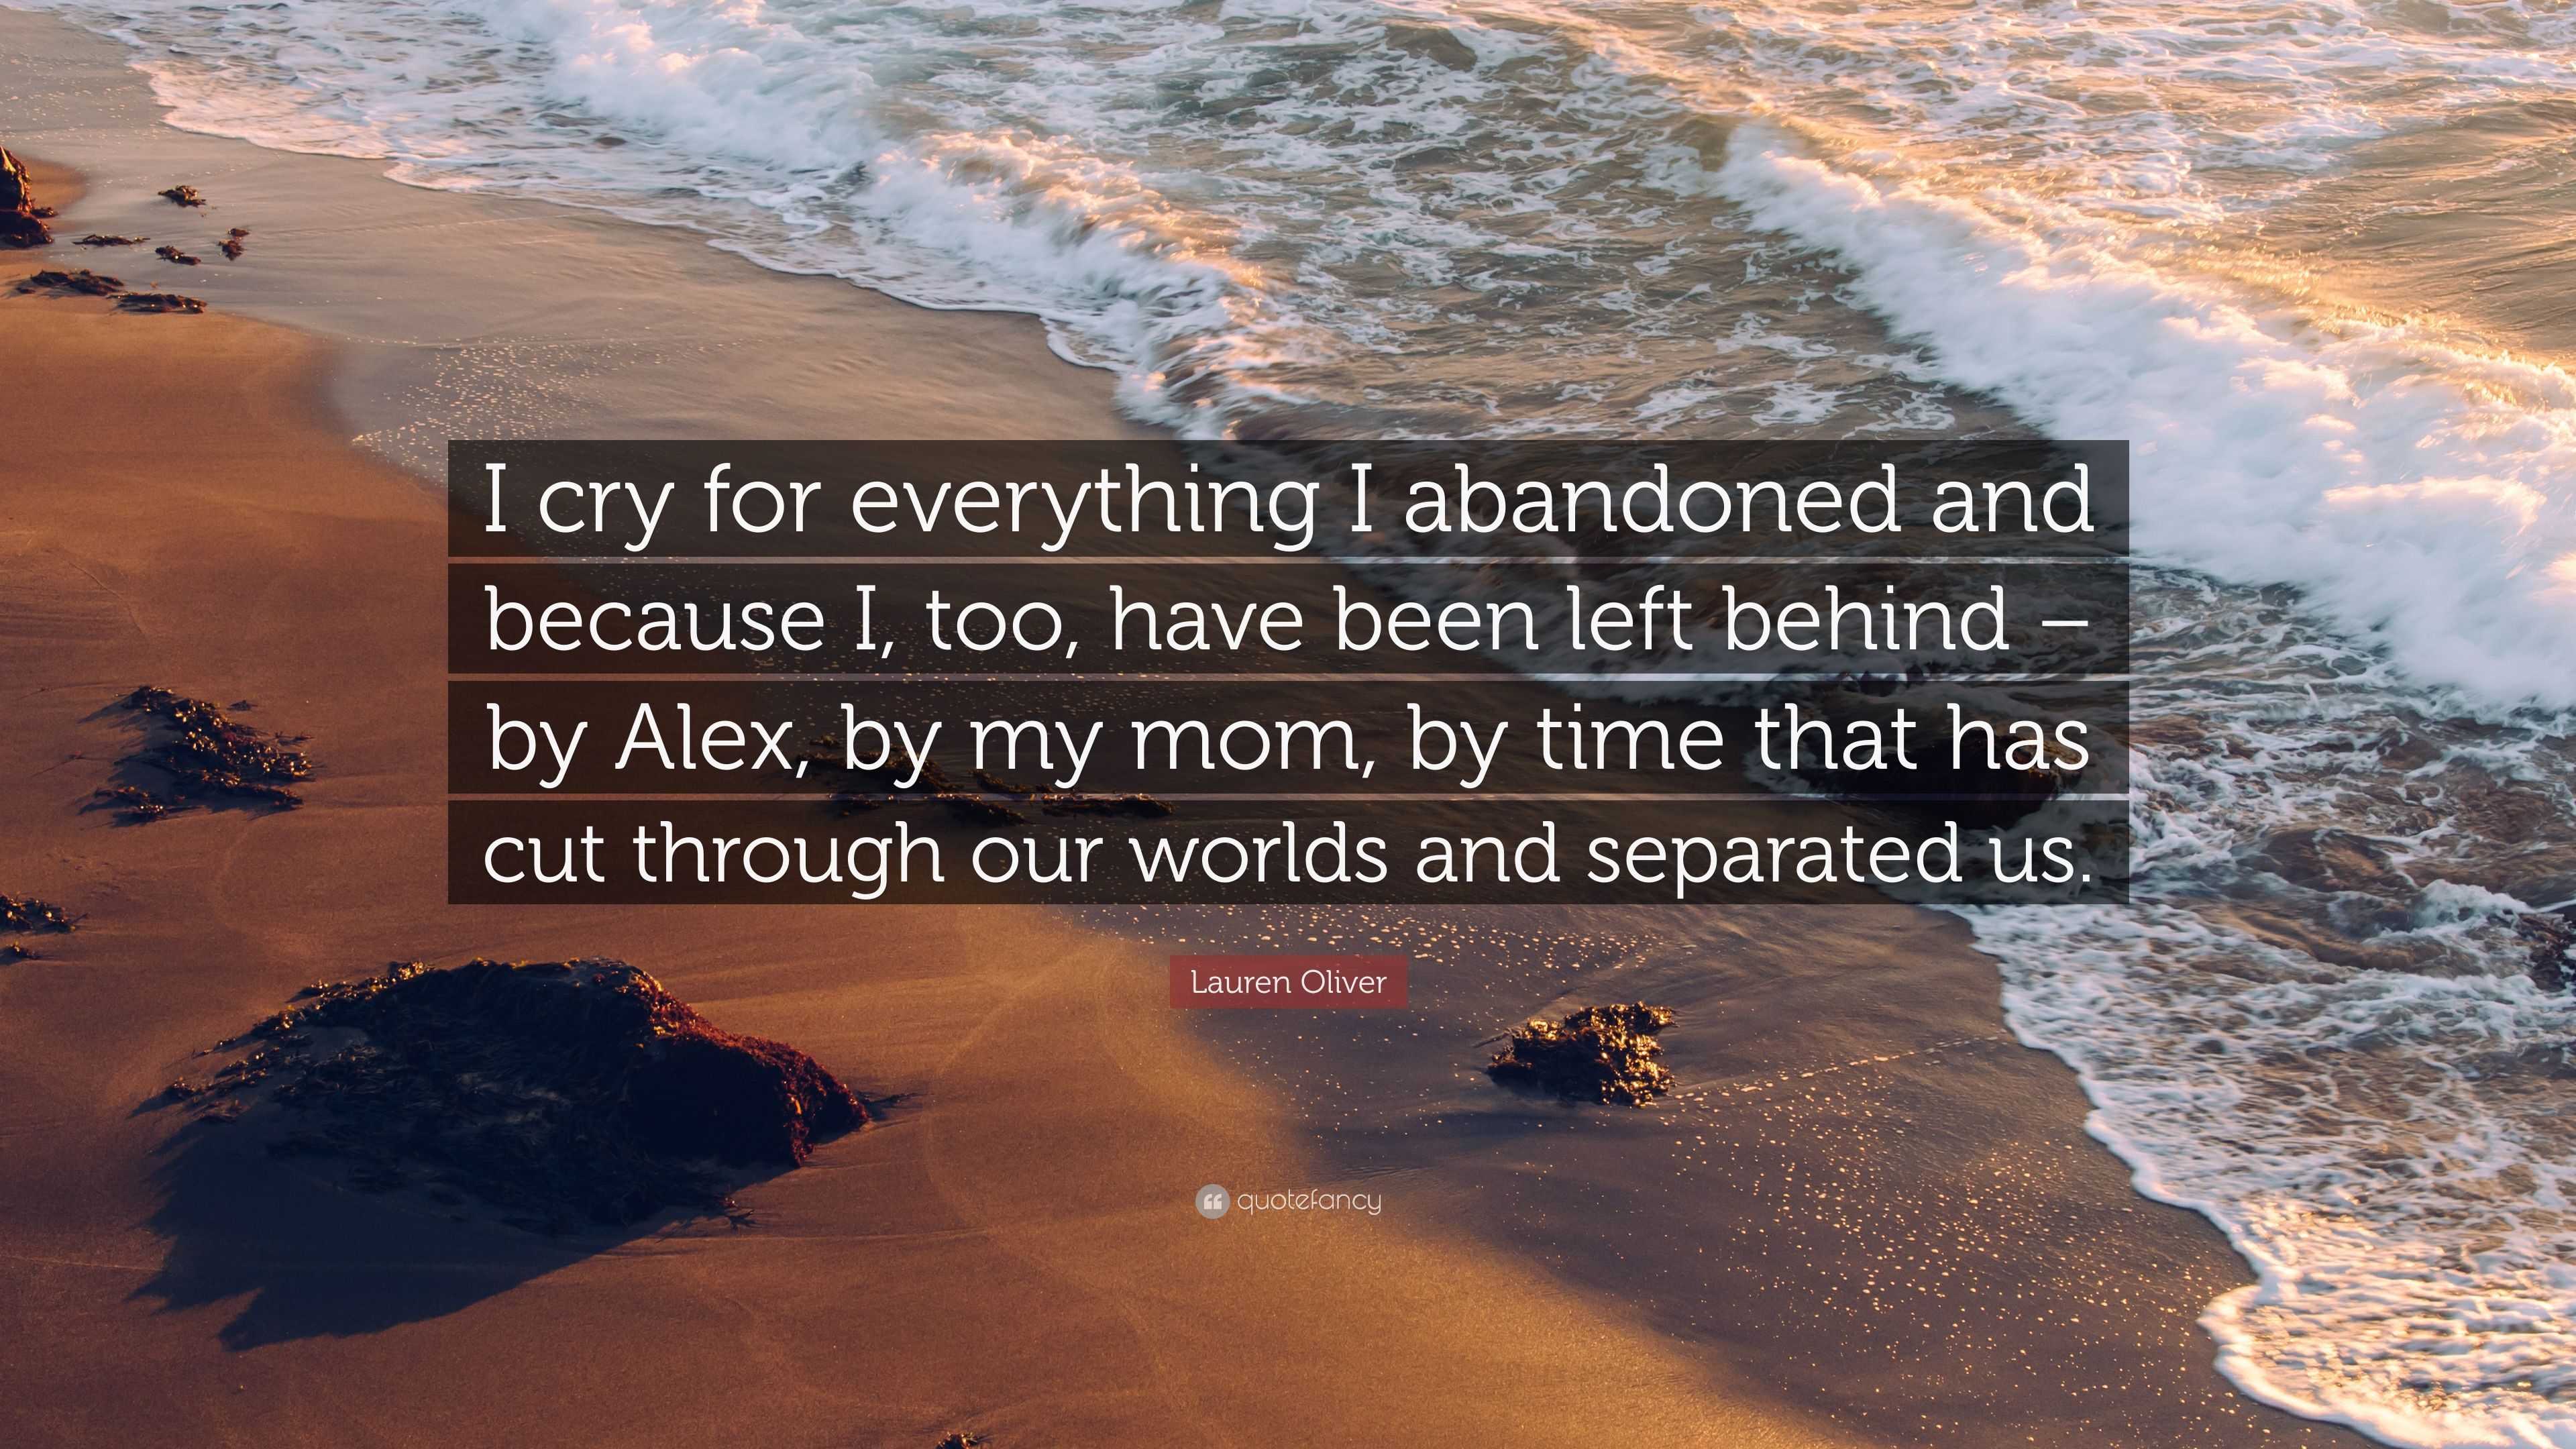 Lauren Oliver Quote I Cry For Everything I Abandoned And Because I Too Have Been Left Behind By Alex By My Mom By Time That Has Cut Th 6 Wallpapers Quotefancy